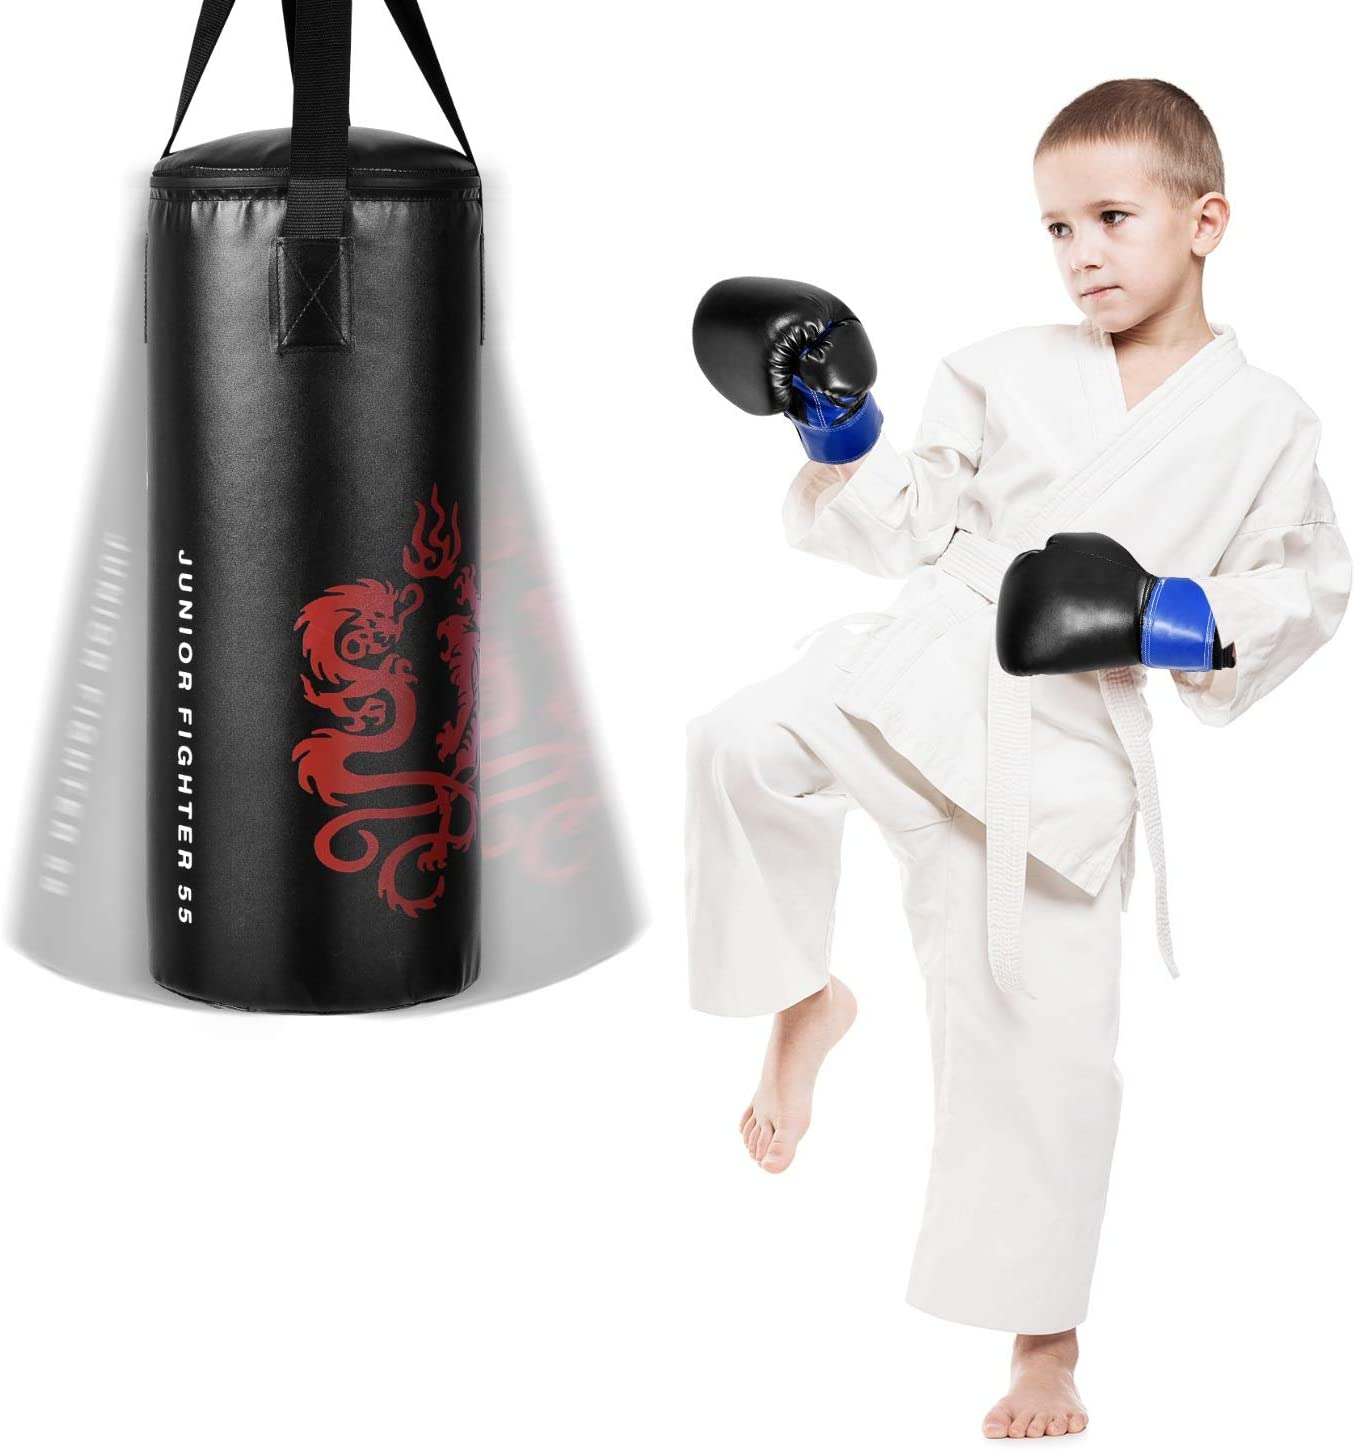 Heavy Duty Free Standing Boxing Punch Bag Training Indoor Sport Kick Art UFC